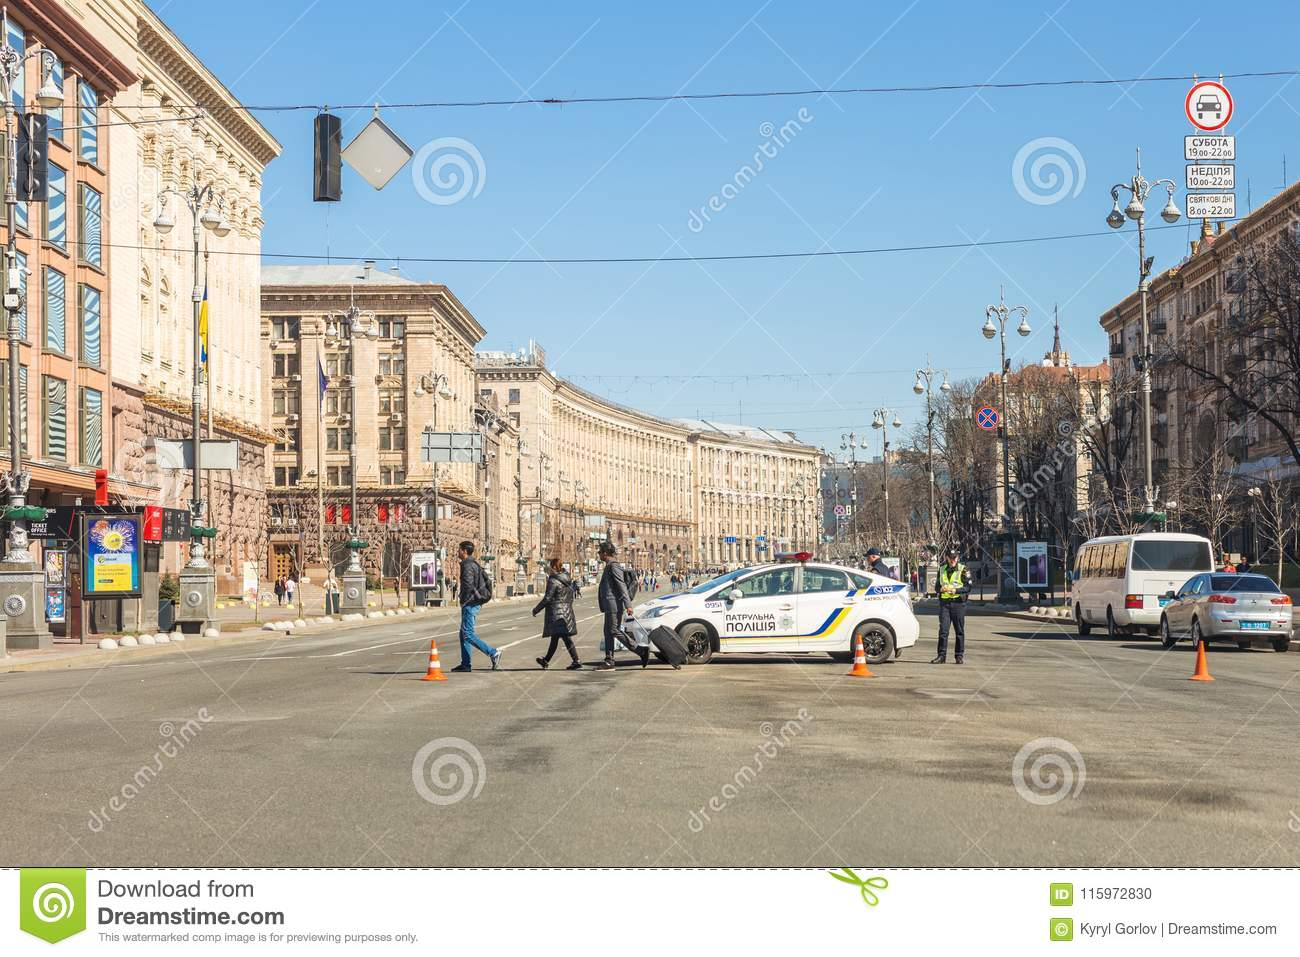 Kiev,Ukraine - May 06, 2017:Central street of ukrainian capital Kyiv Khreschatyk closed for traffic by police car and